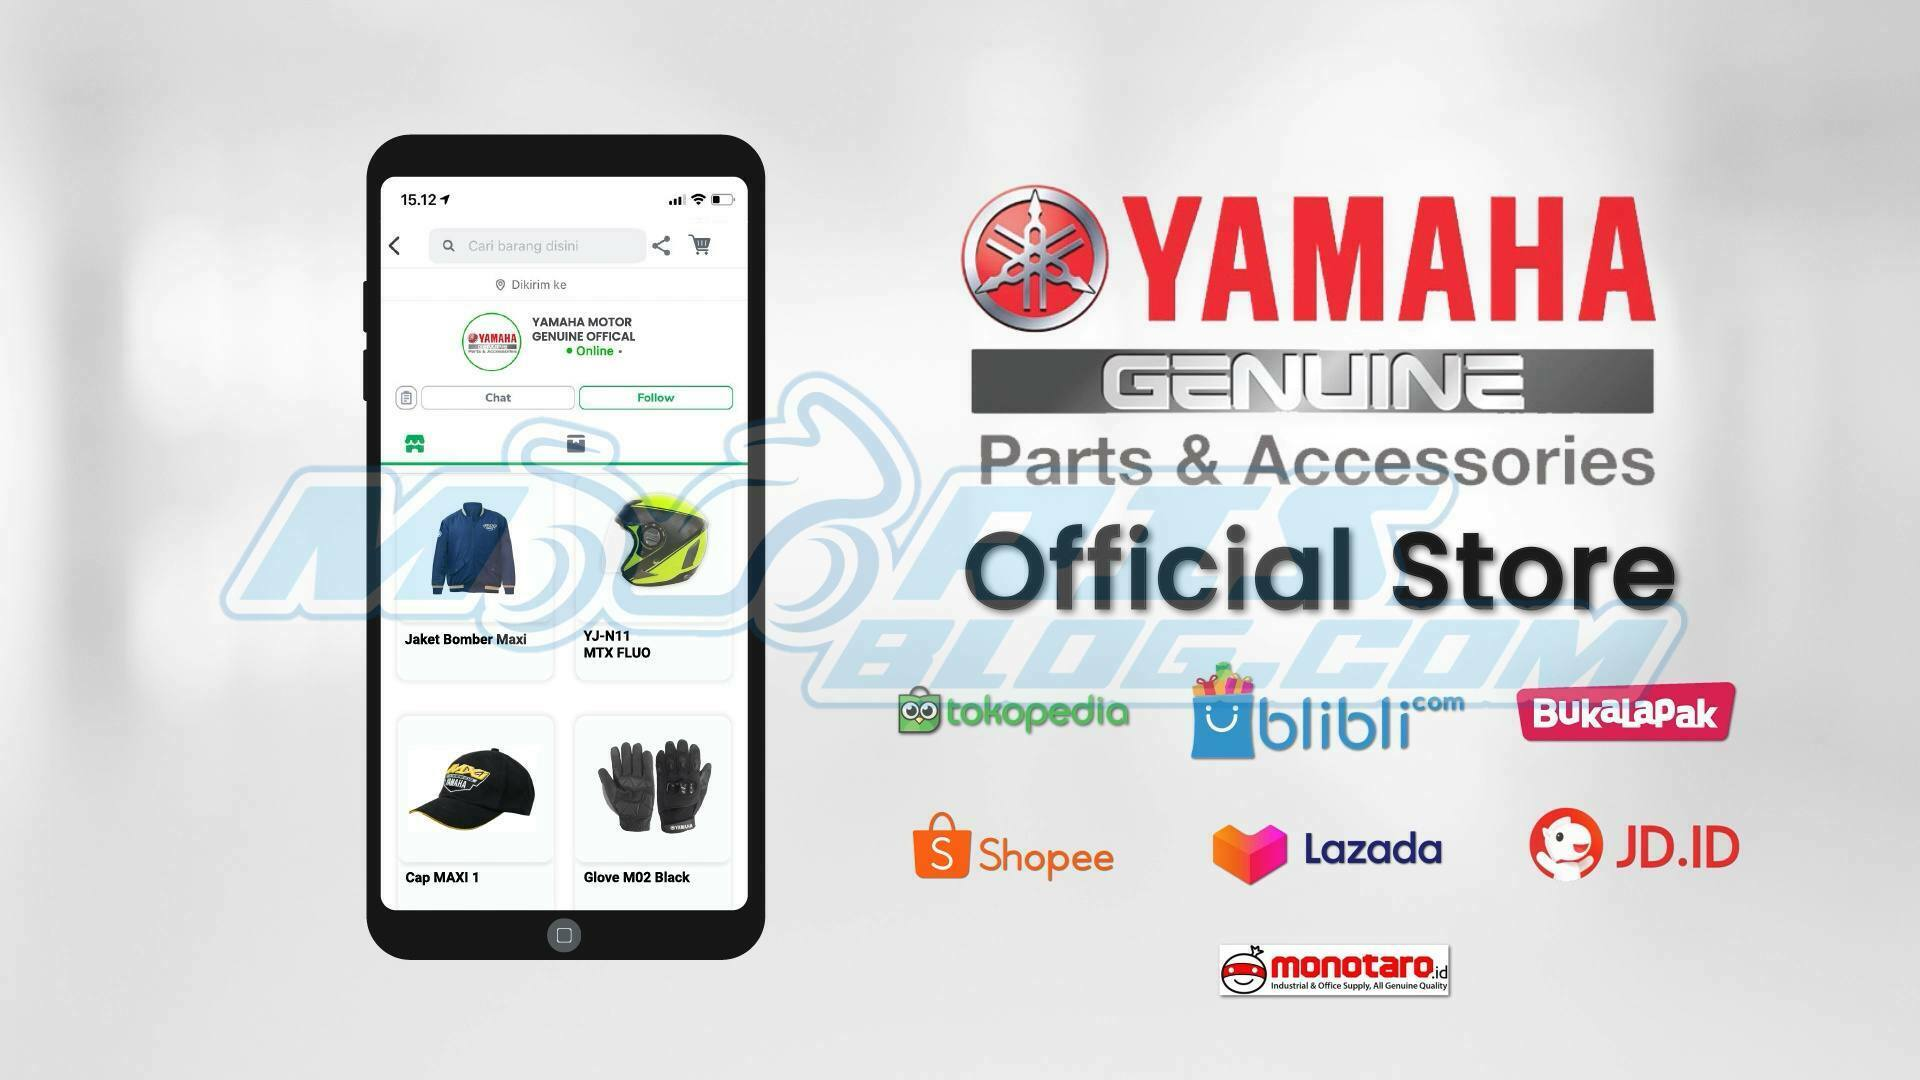 Yamaha Motor Genuine Official Store